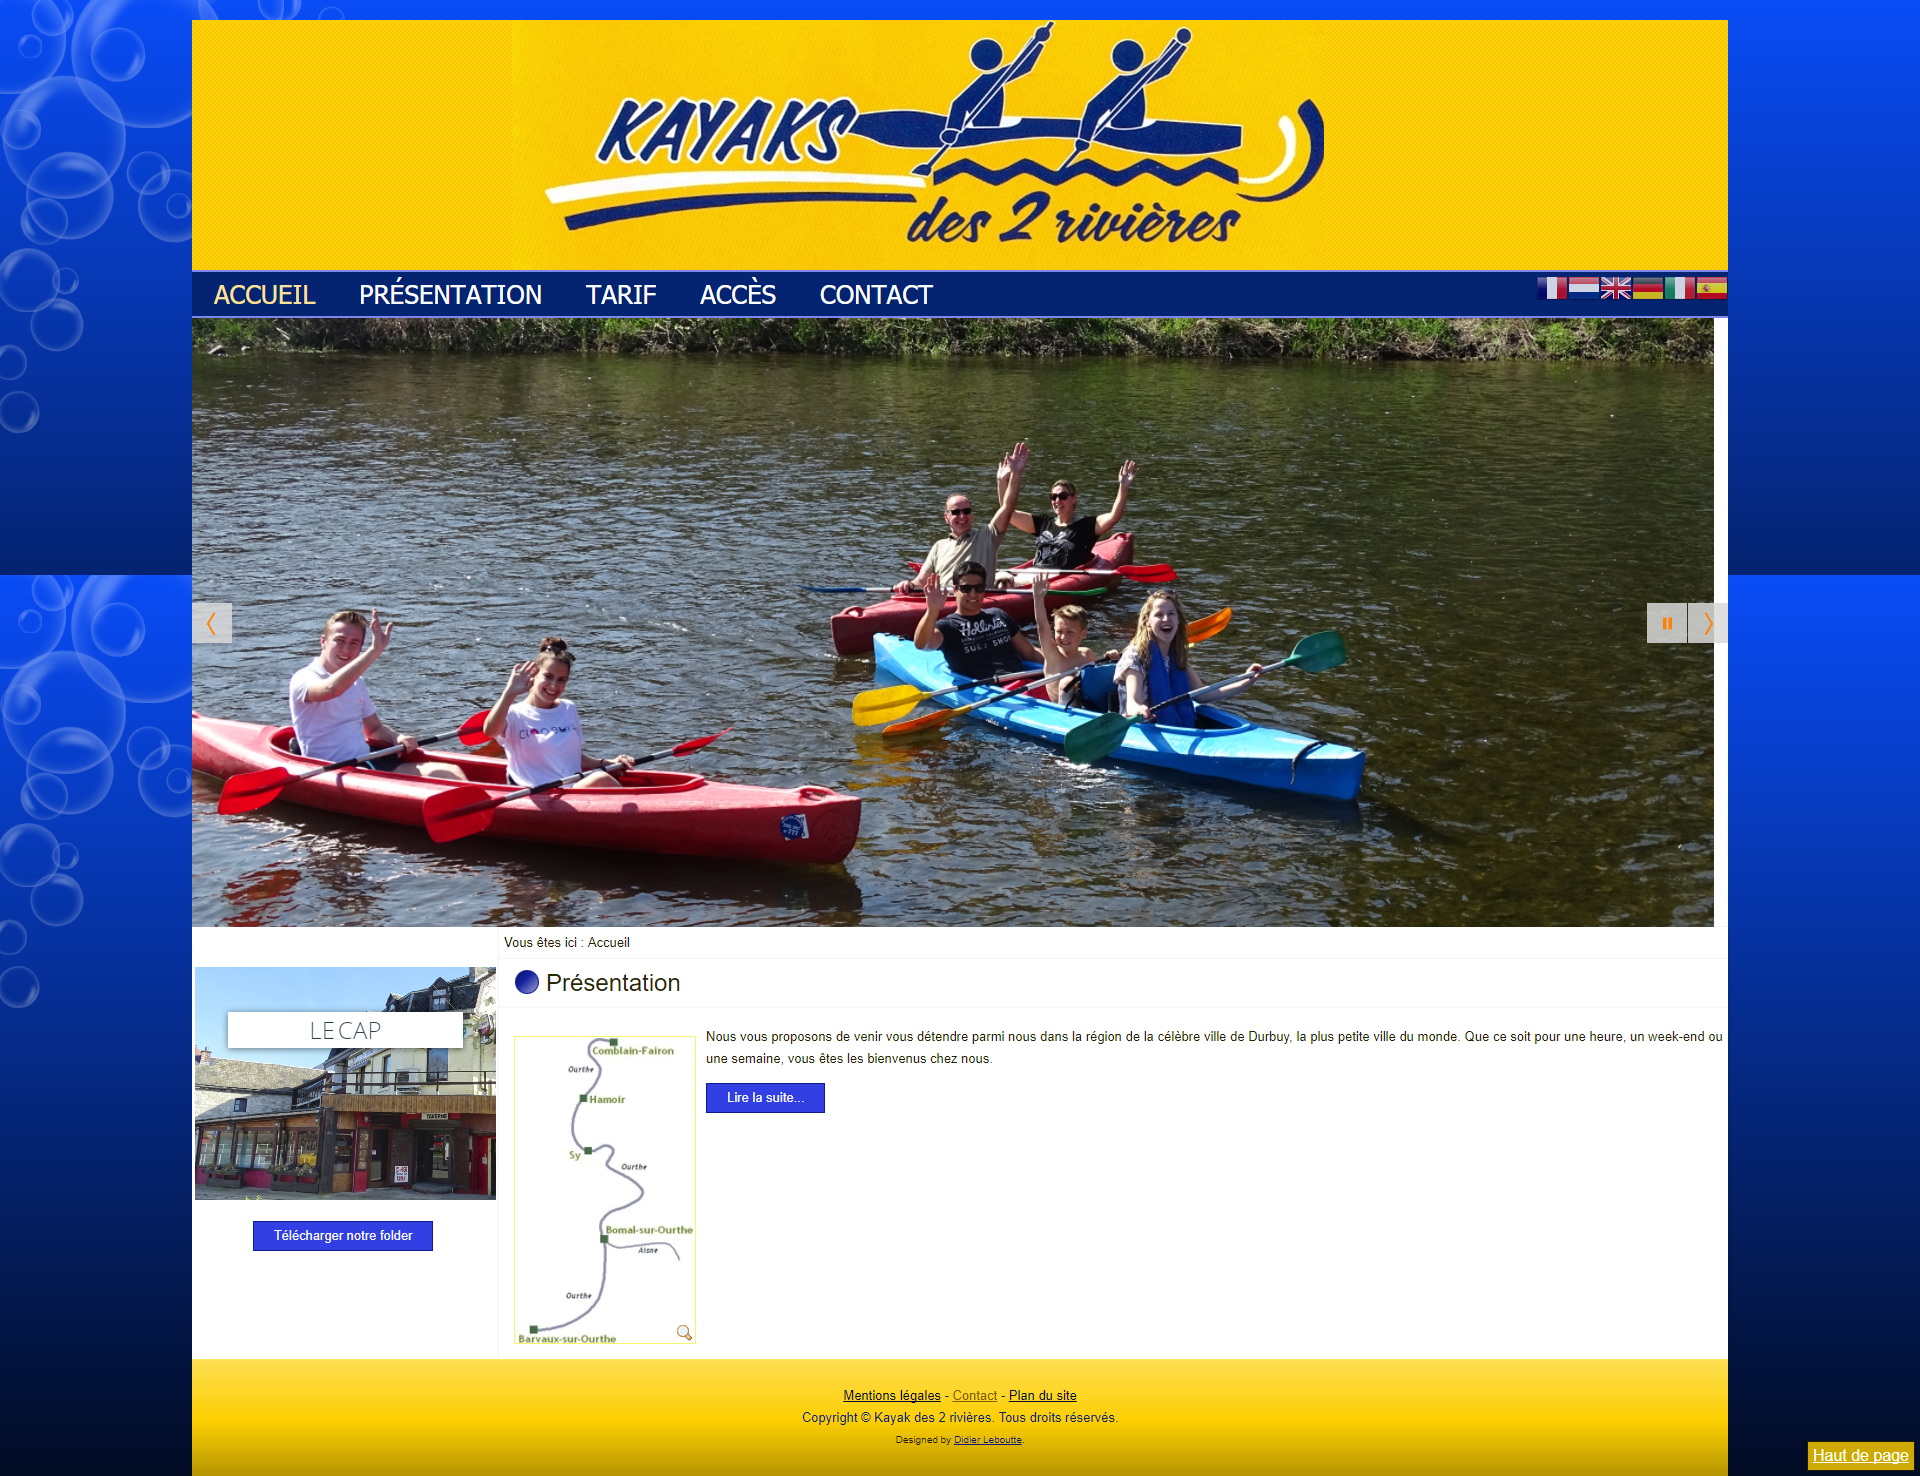 kayakdes2rivires 5pb.be